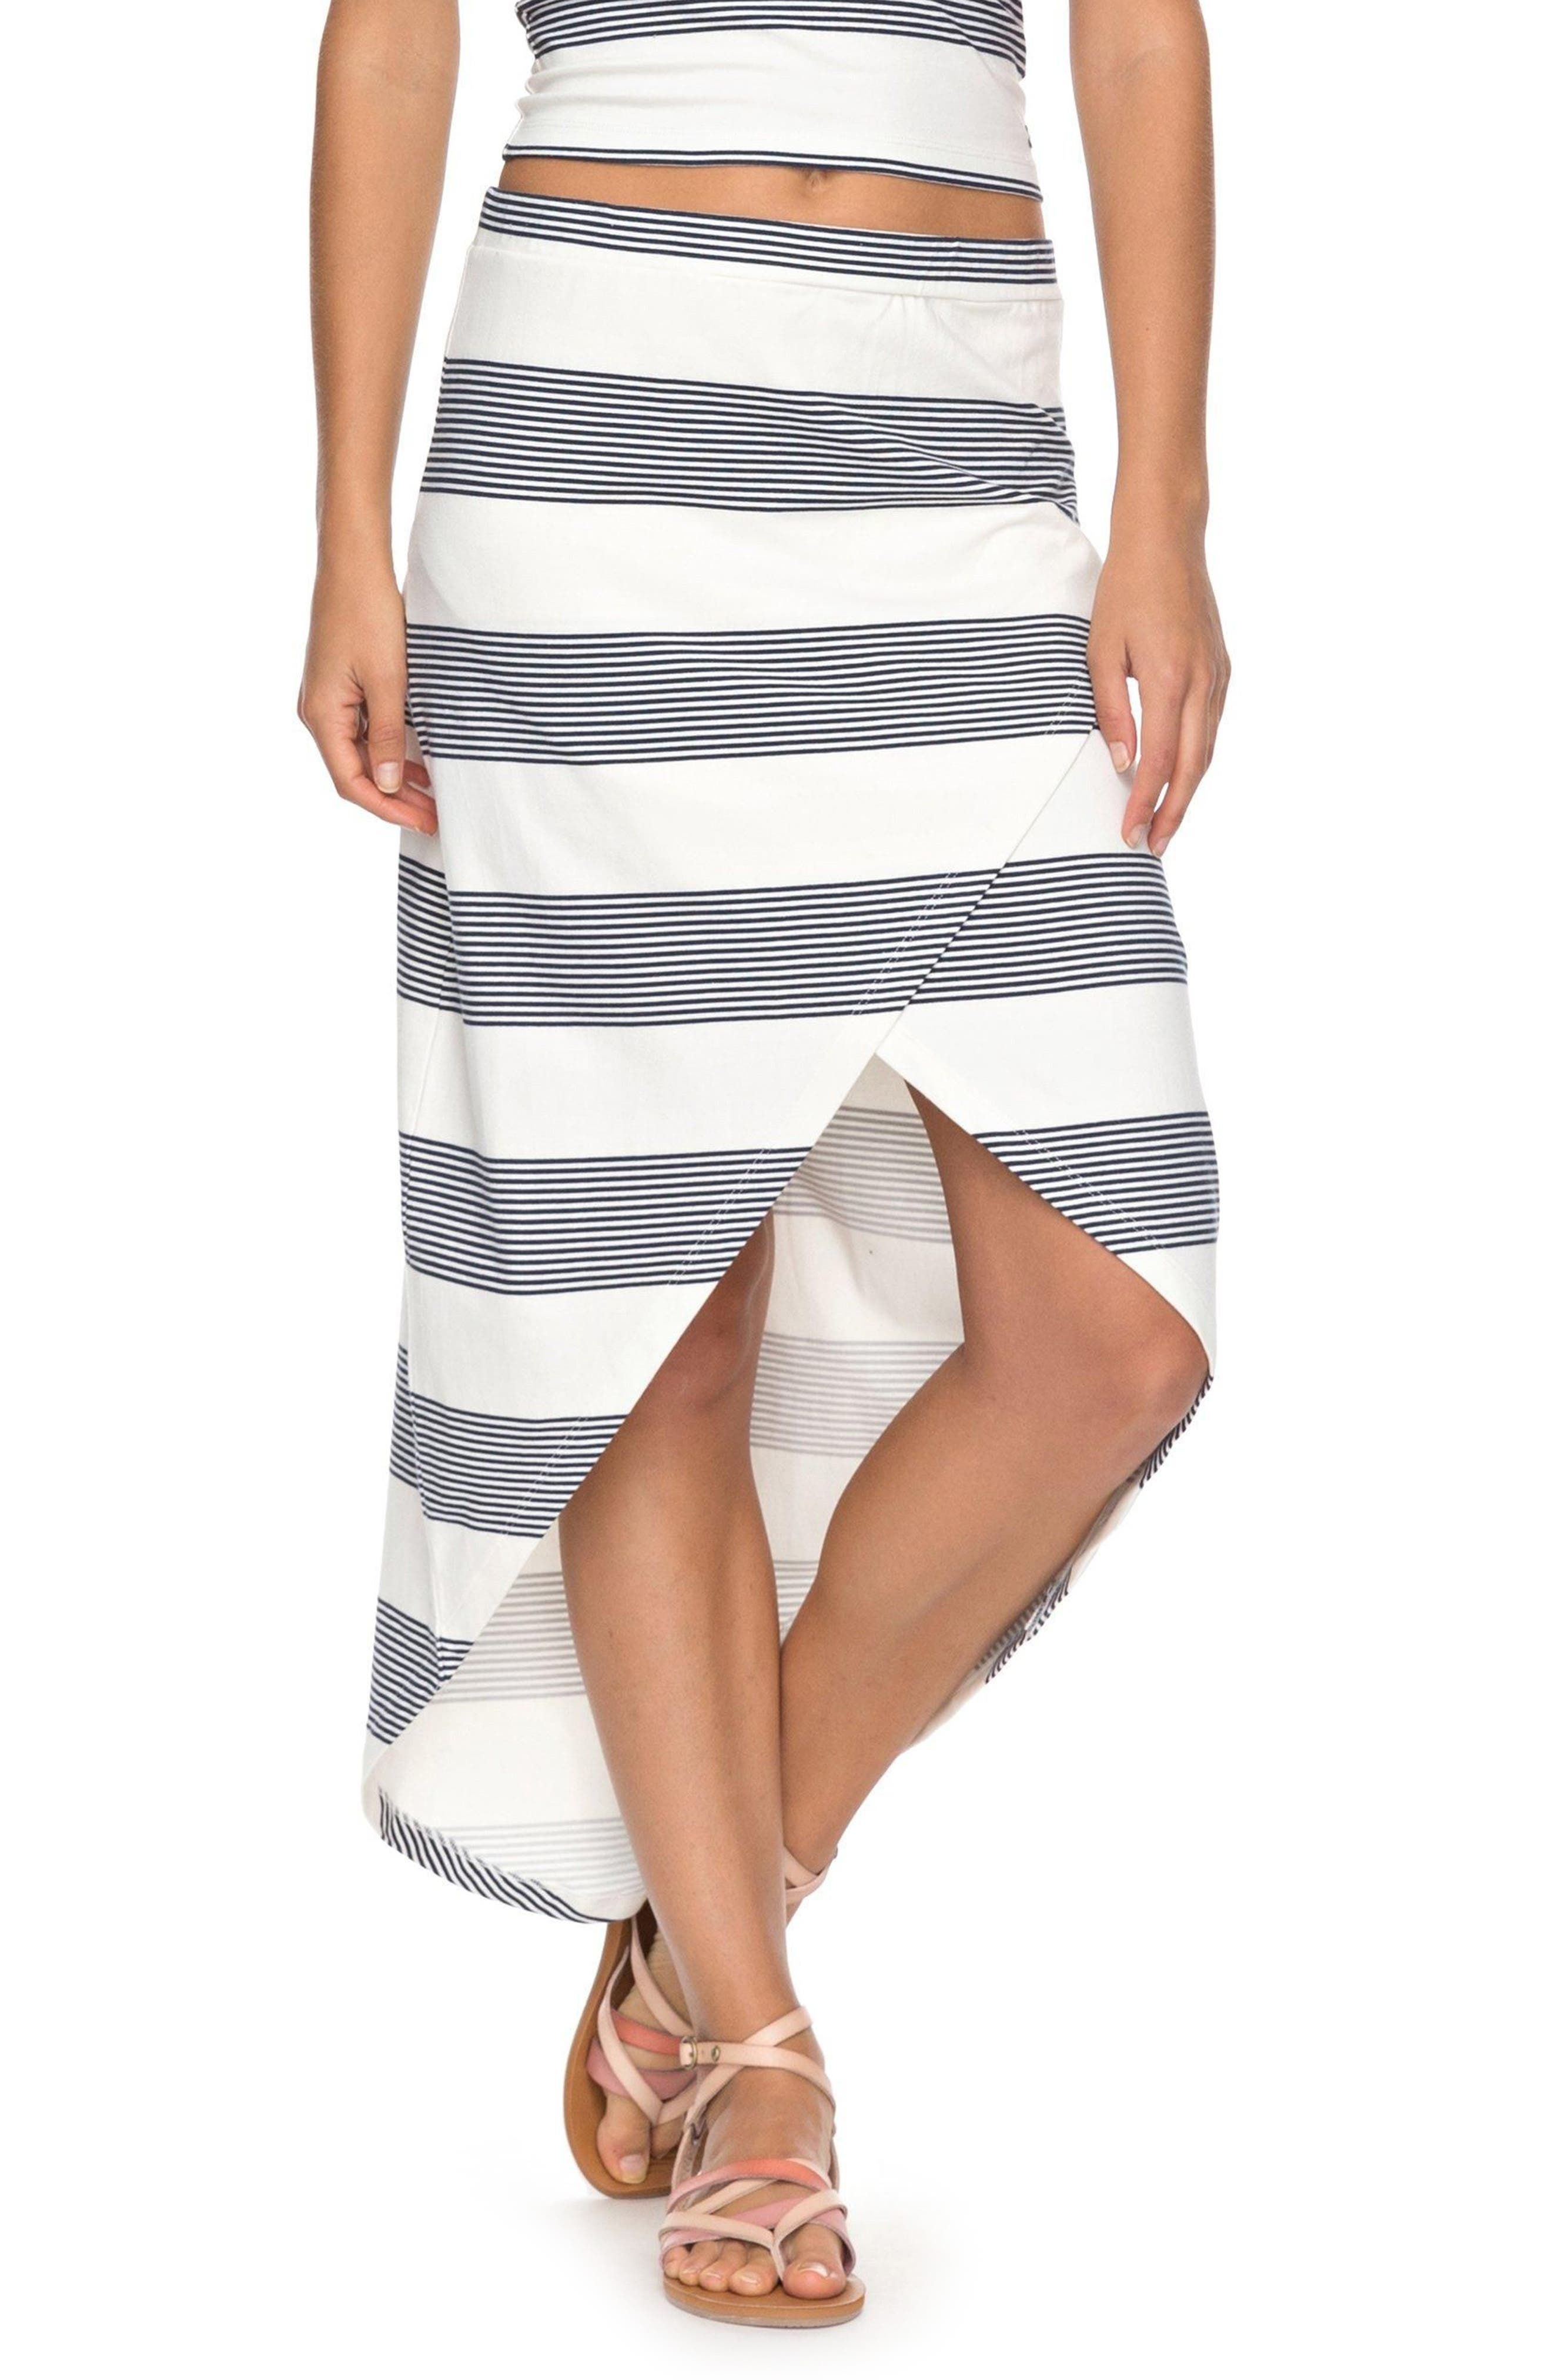 Roxy Romantic Ocean Stripe High/Low Skirt